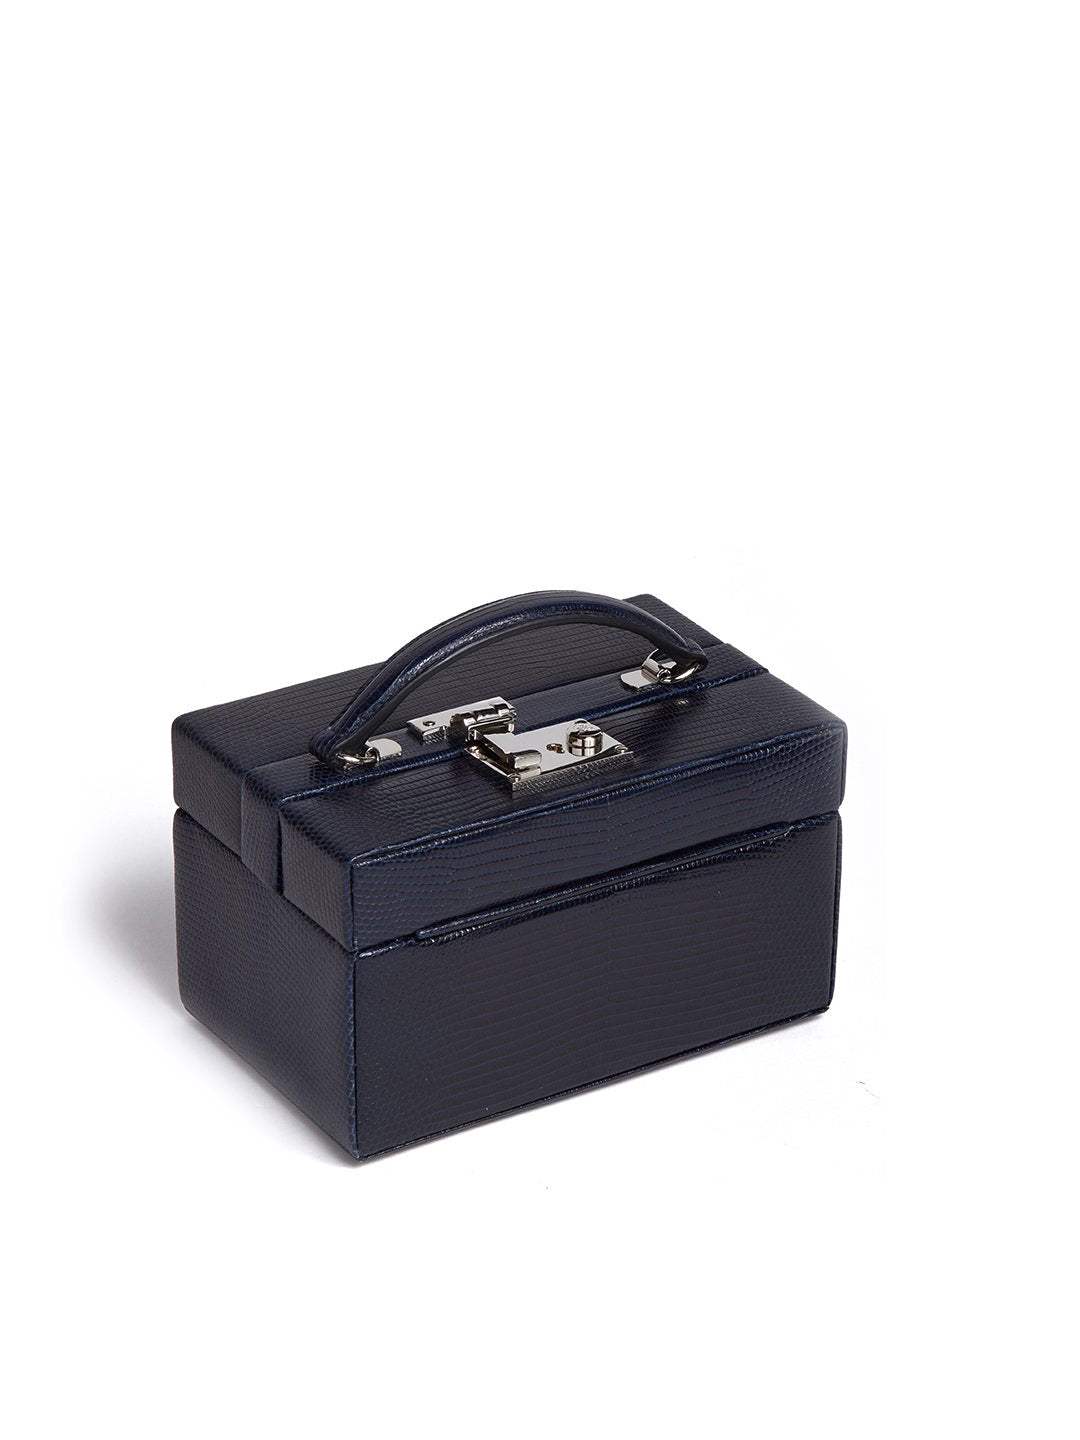 1845 Leather Mini Trunk